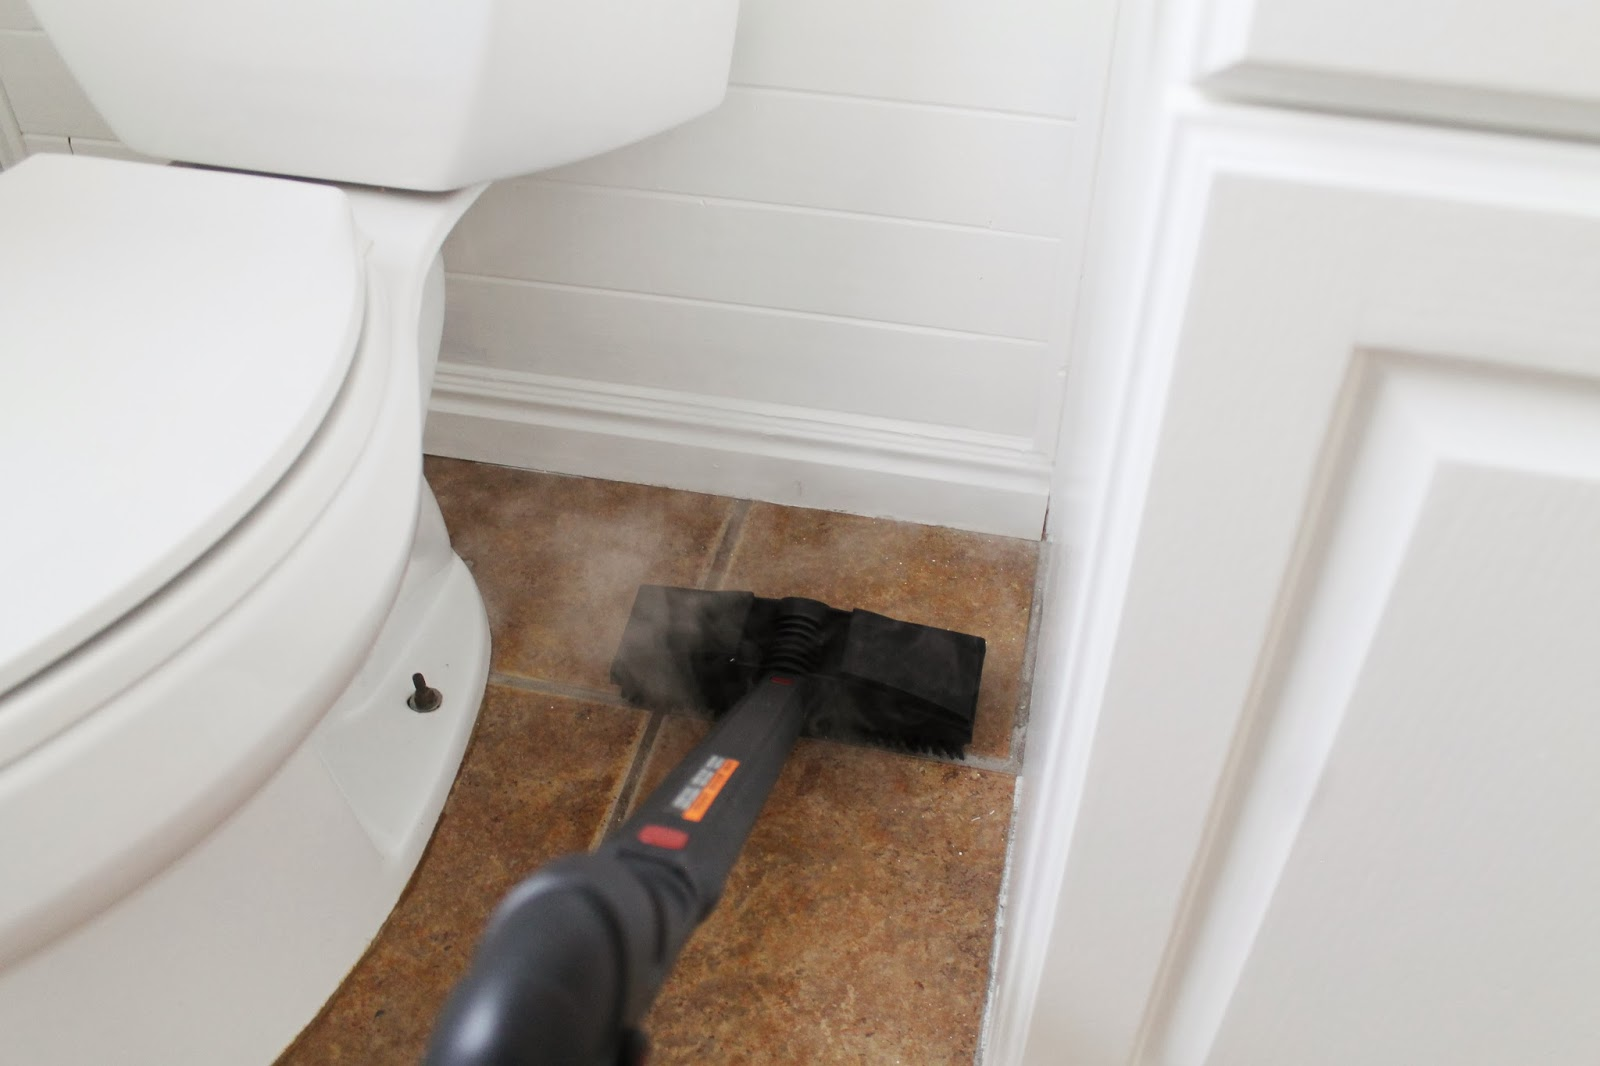 Cleaning Tile Floors Without Chemicals - Chris Loves Julia